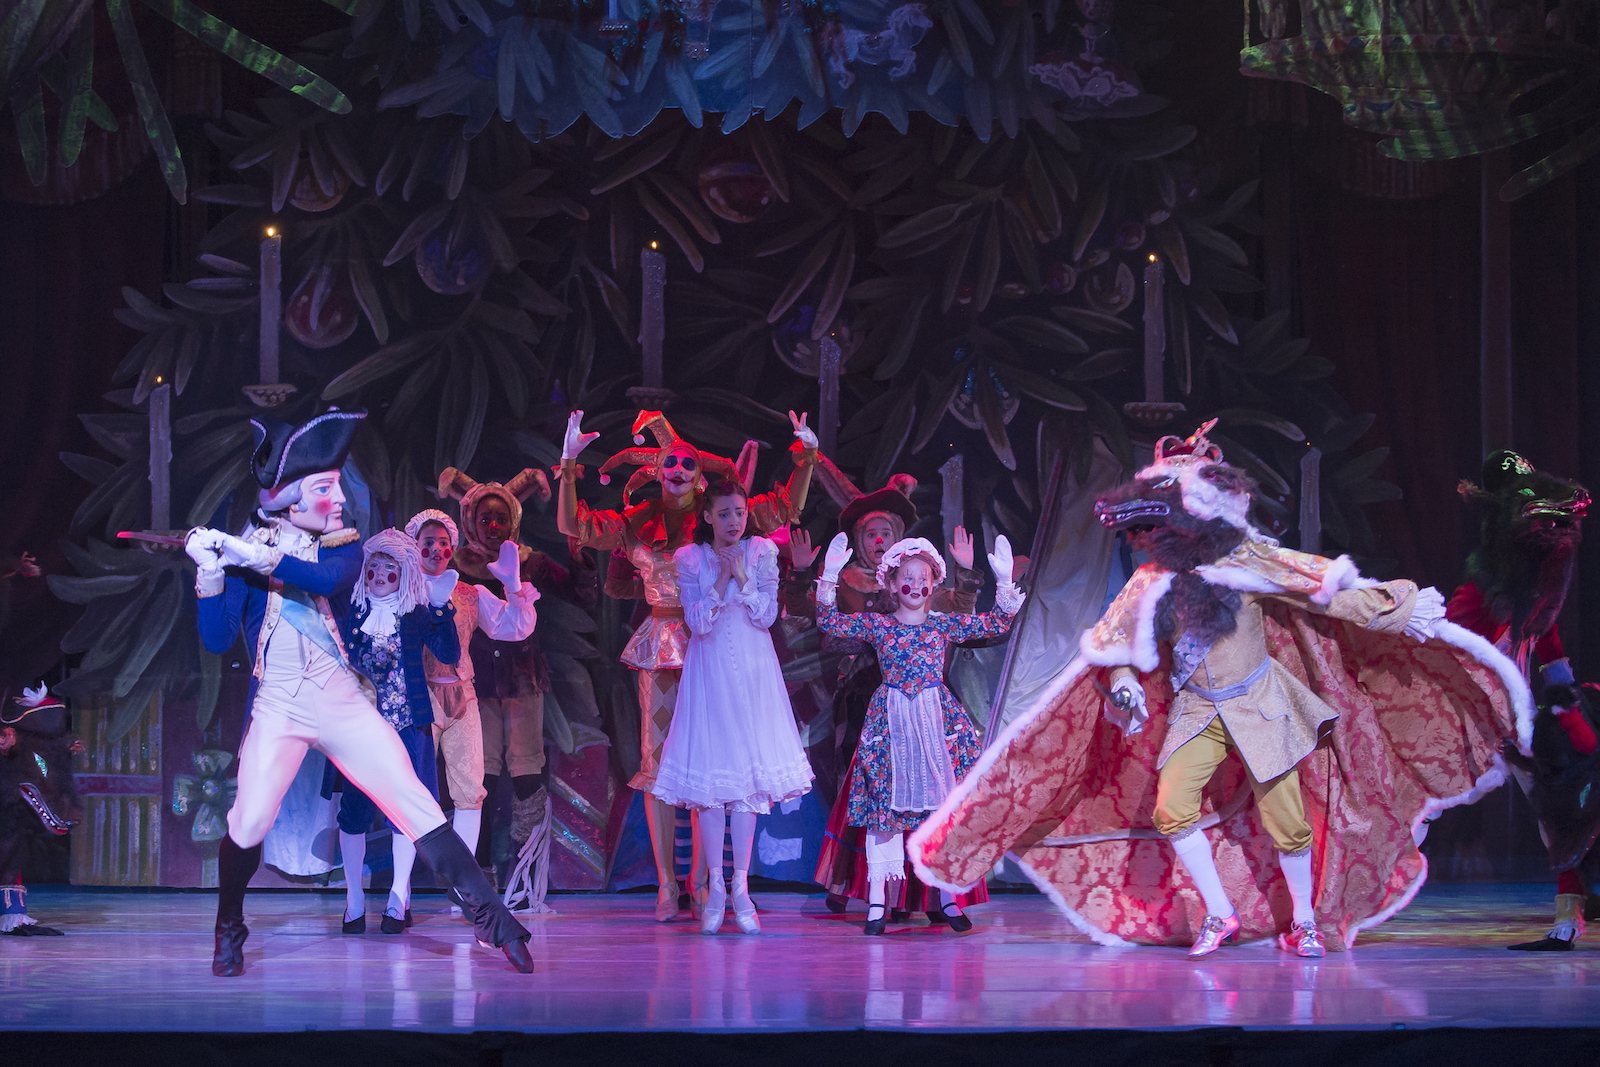 Dancing Into Yuletide One Ballet Company Stages The Nutcracker With Video Projections Another With American Historical Figures Thedcline Org